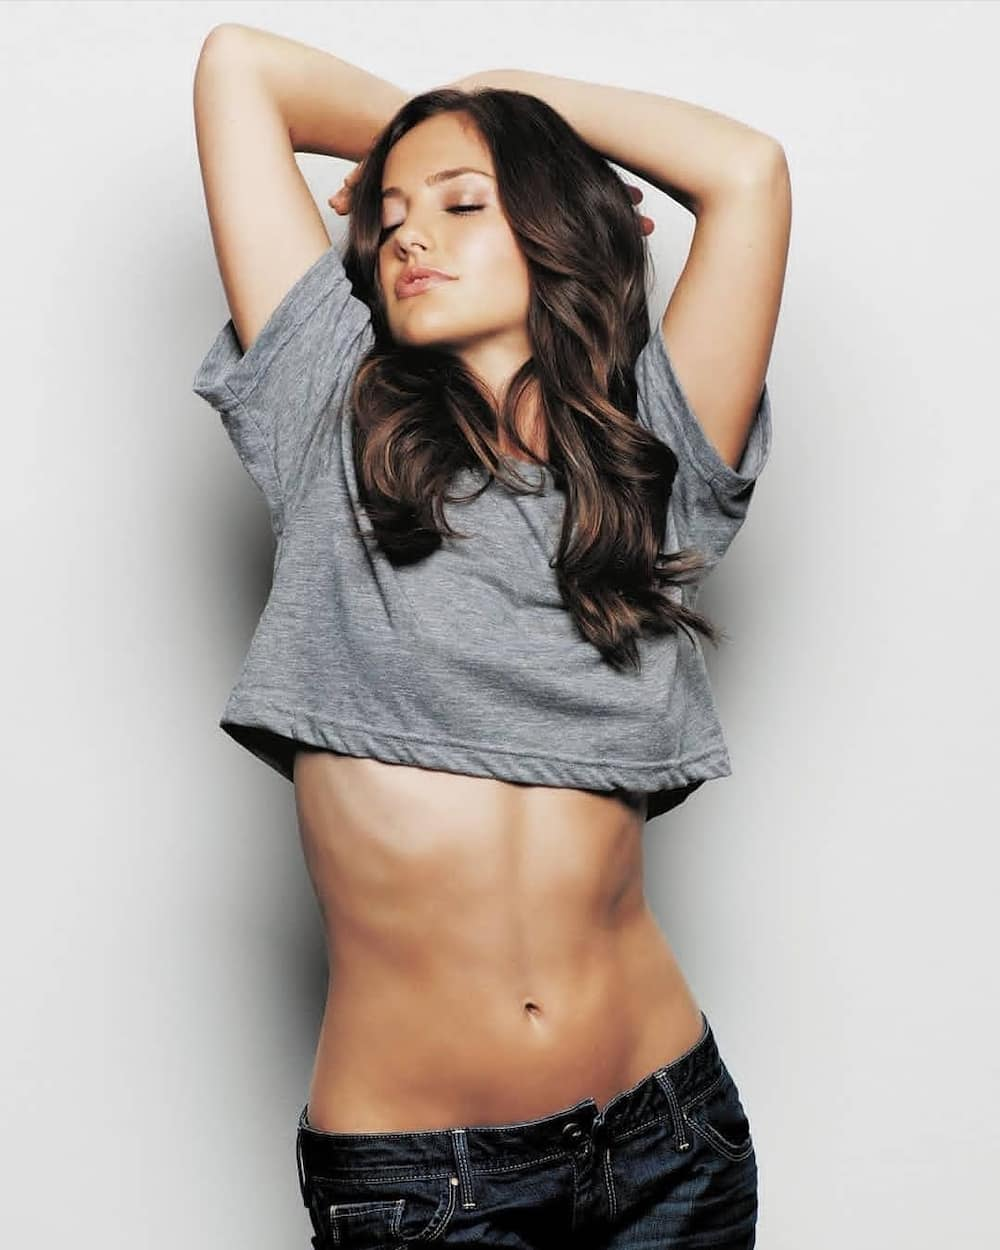 Is Minka Kelly in a relationship?